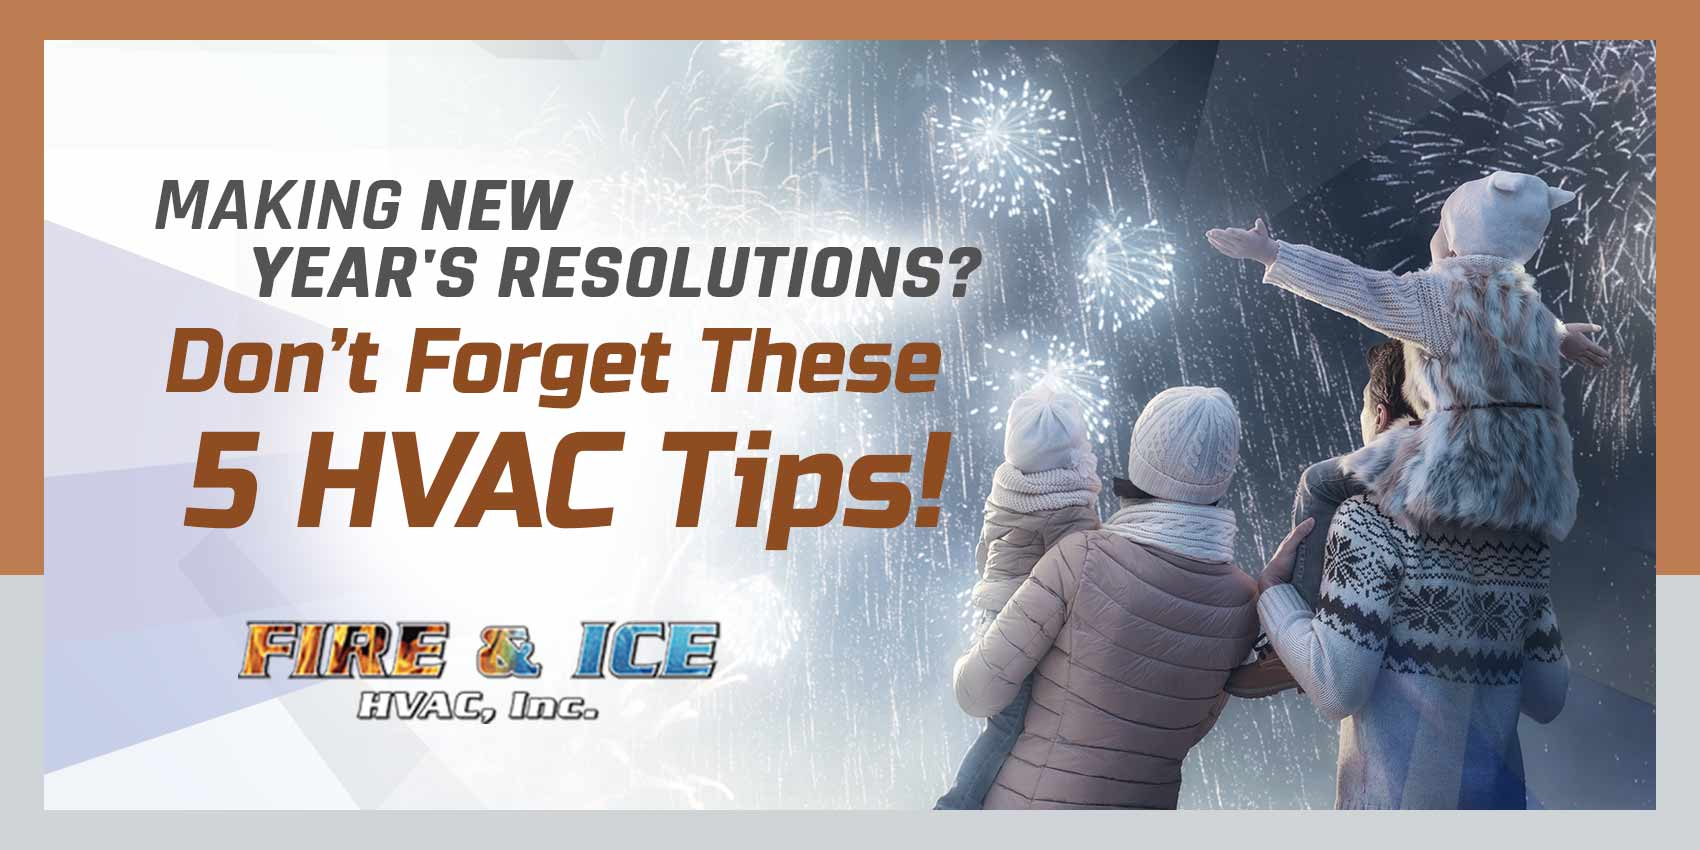 Making New Year's Resolutions? Don't Forget These 5 HVAC Tips!